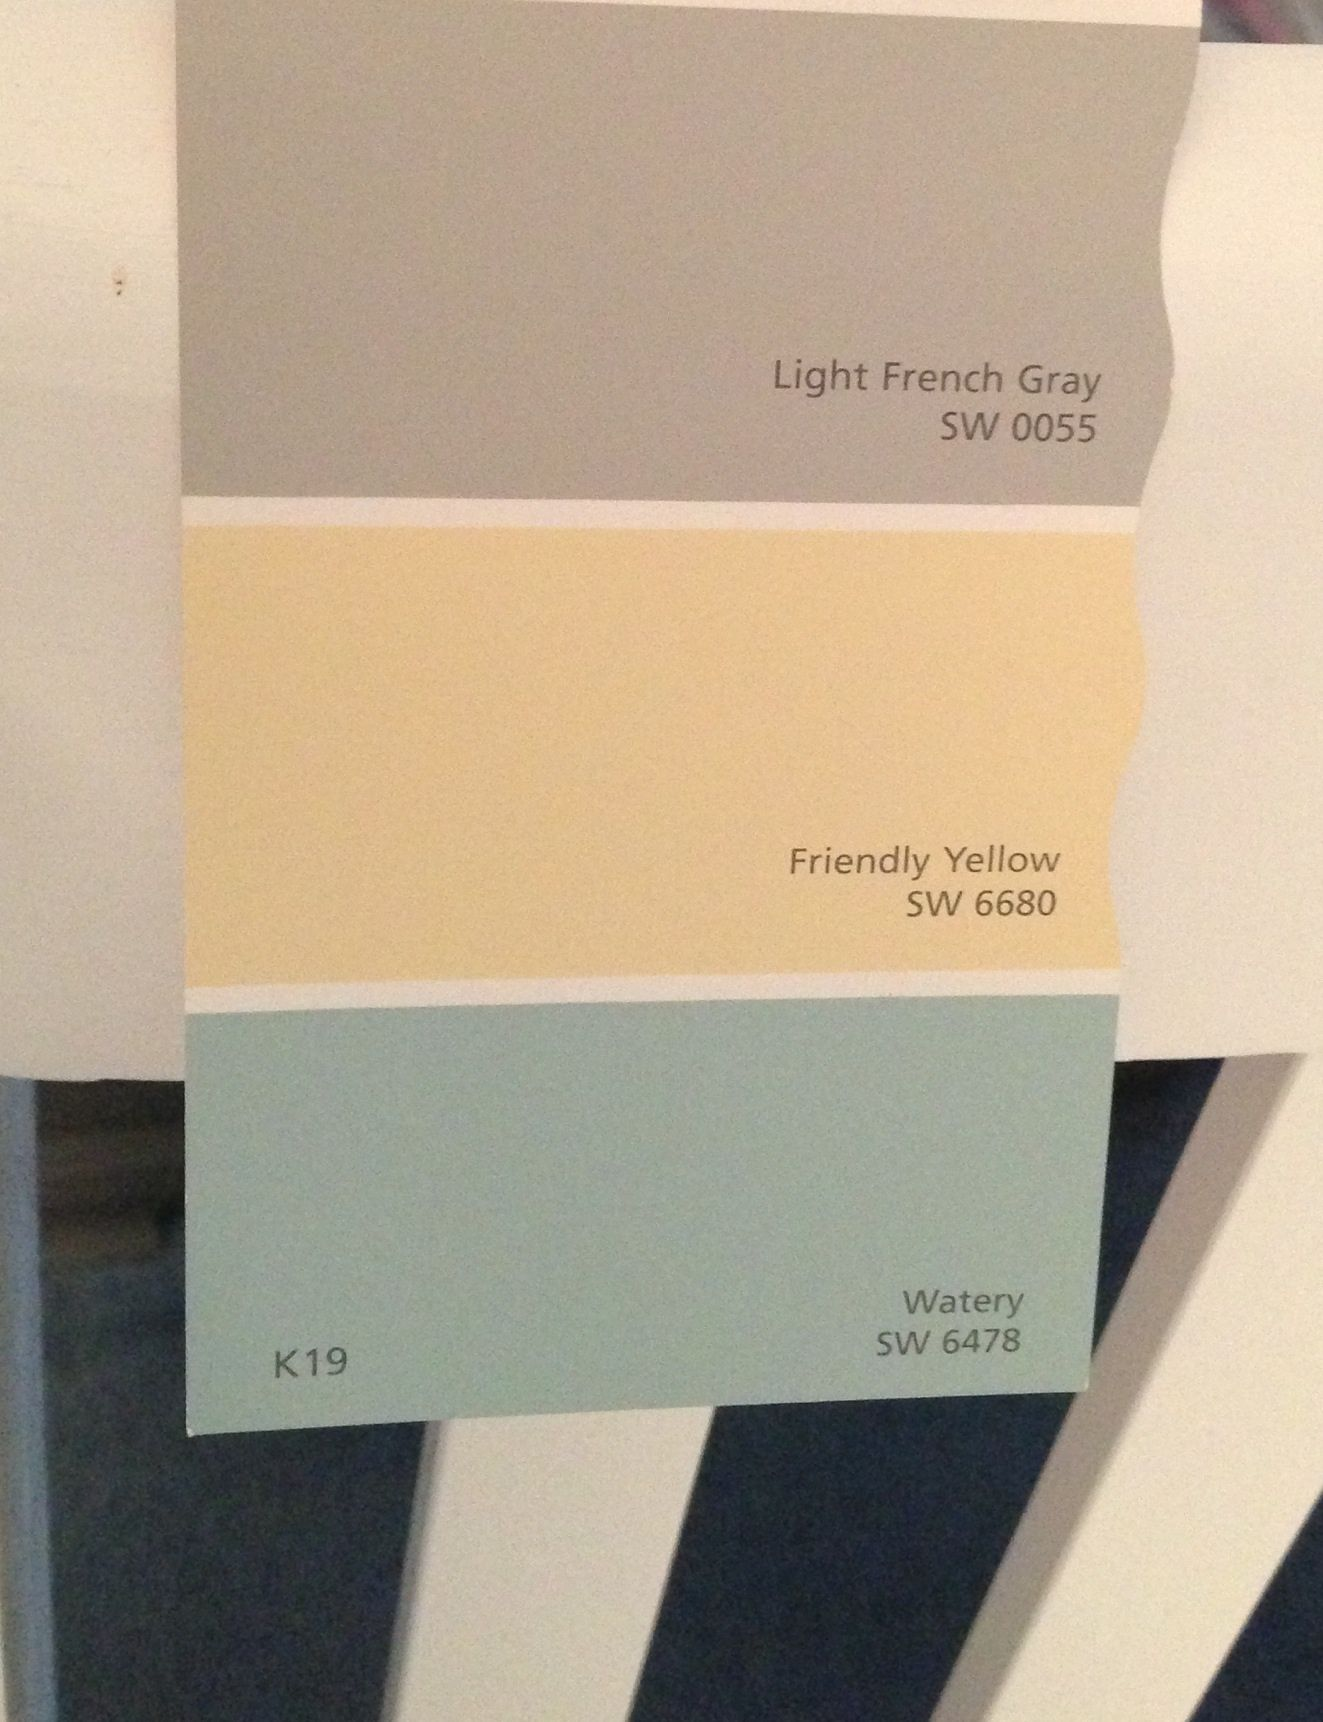 Sherwin Williams light French gray, friendly yellow, and watery ...